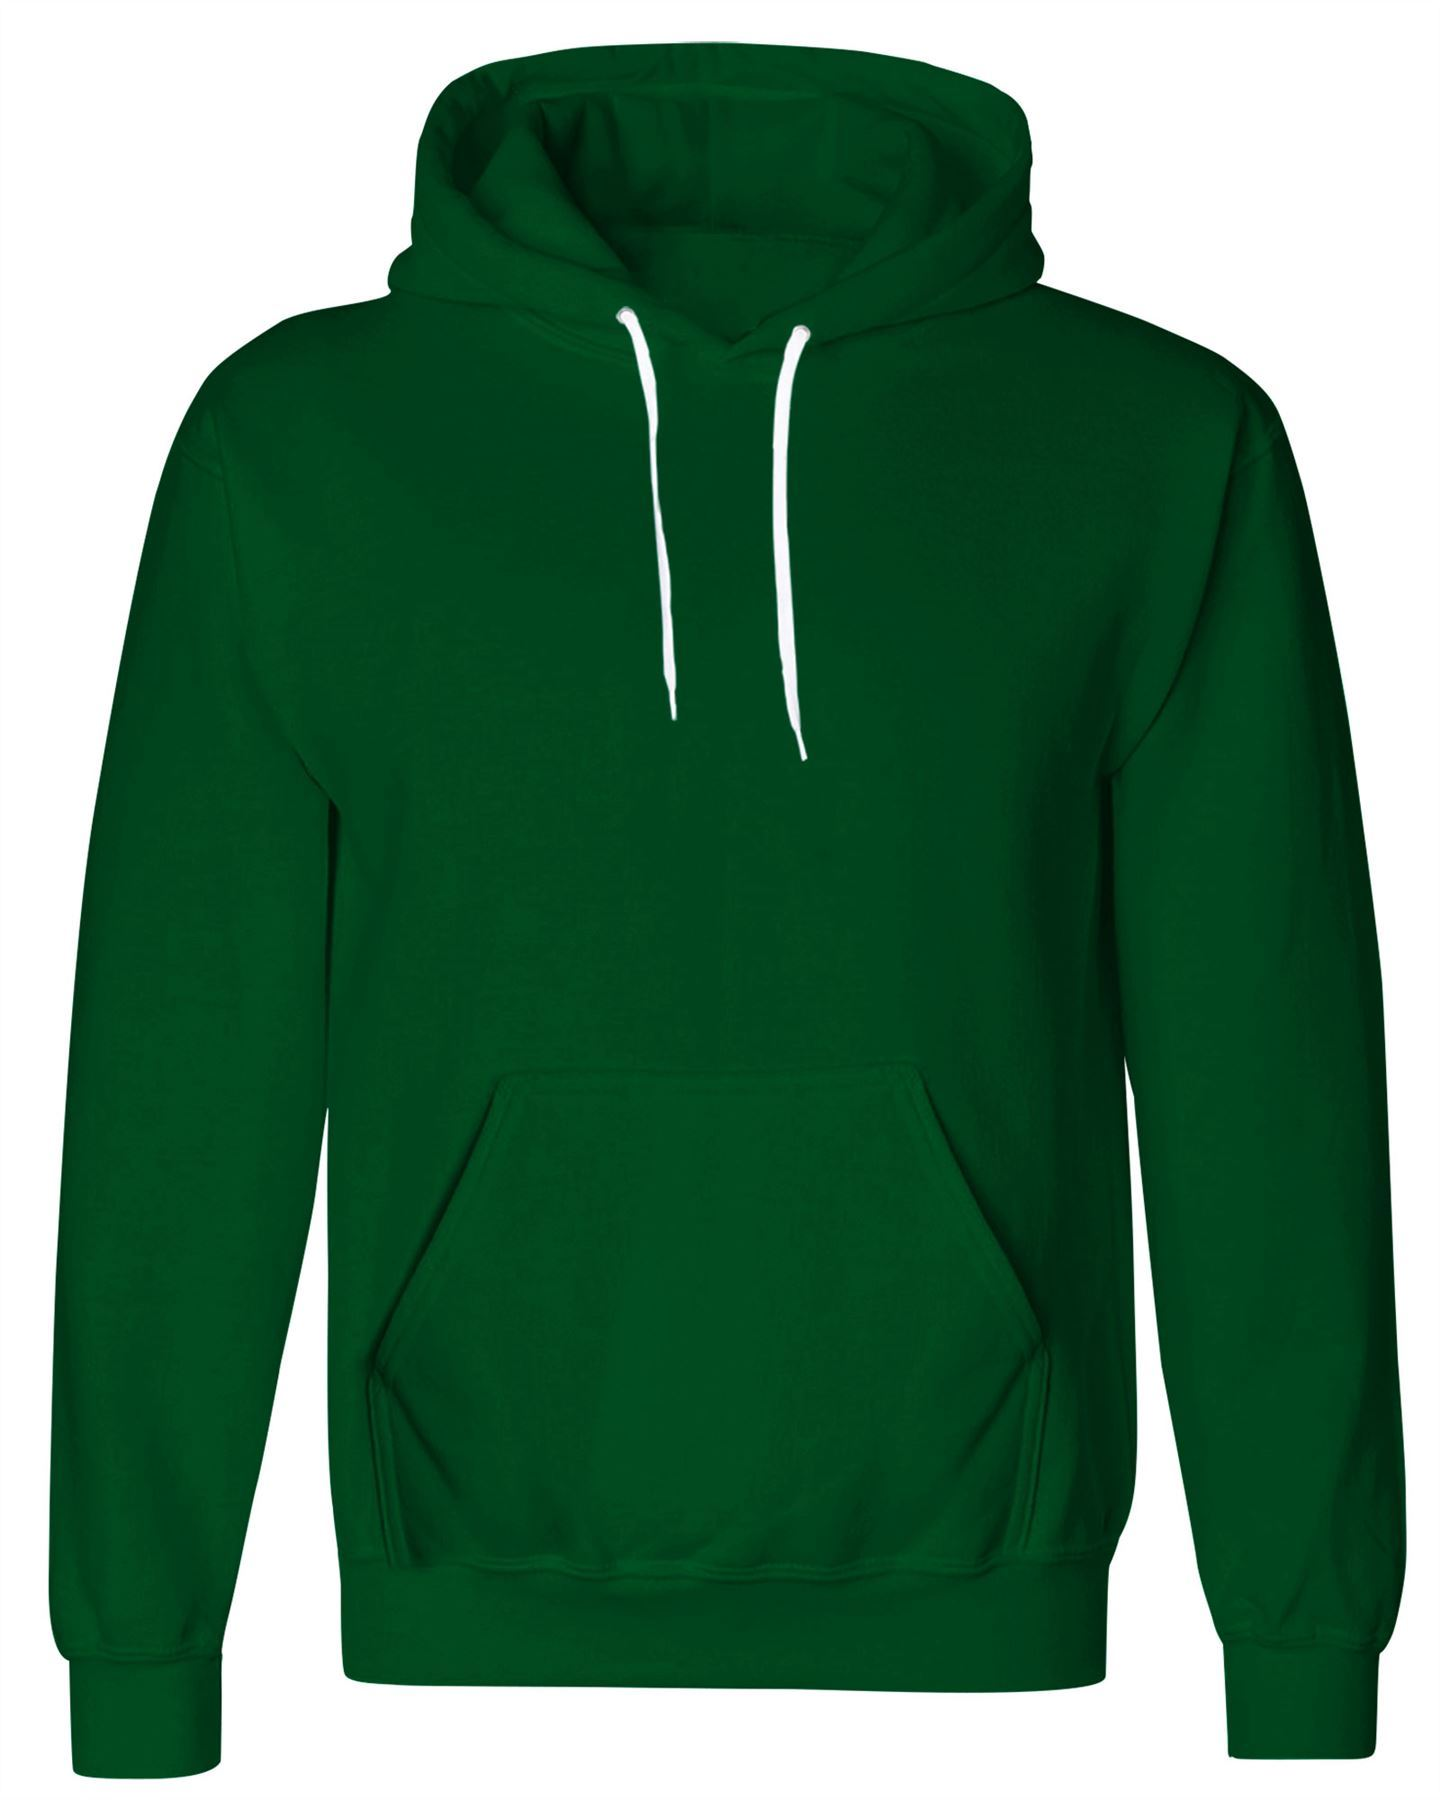 Pullover hoodies for women